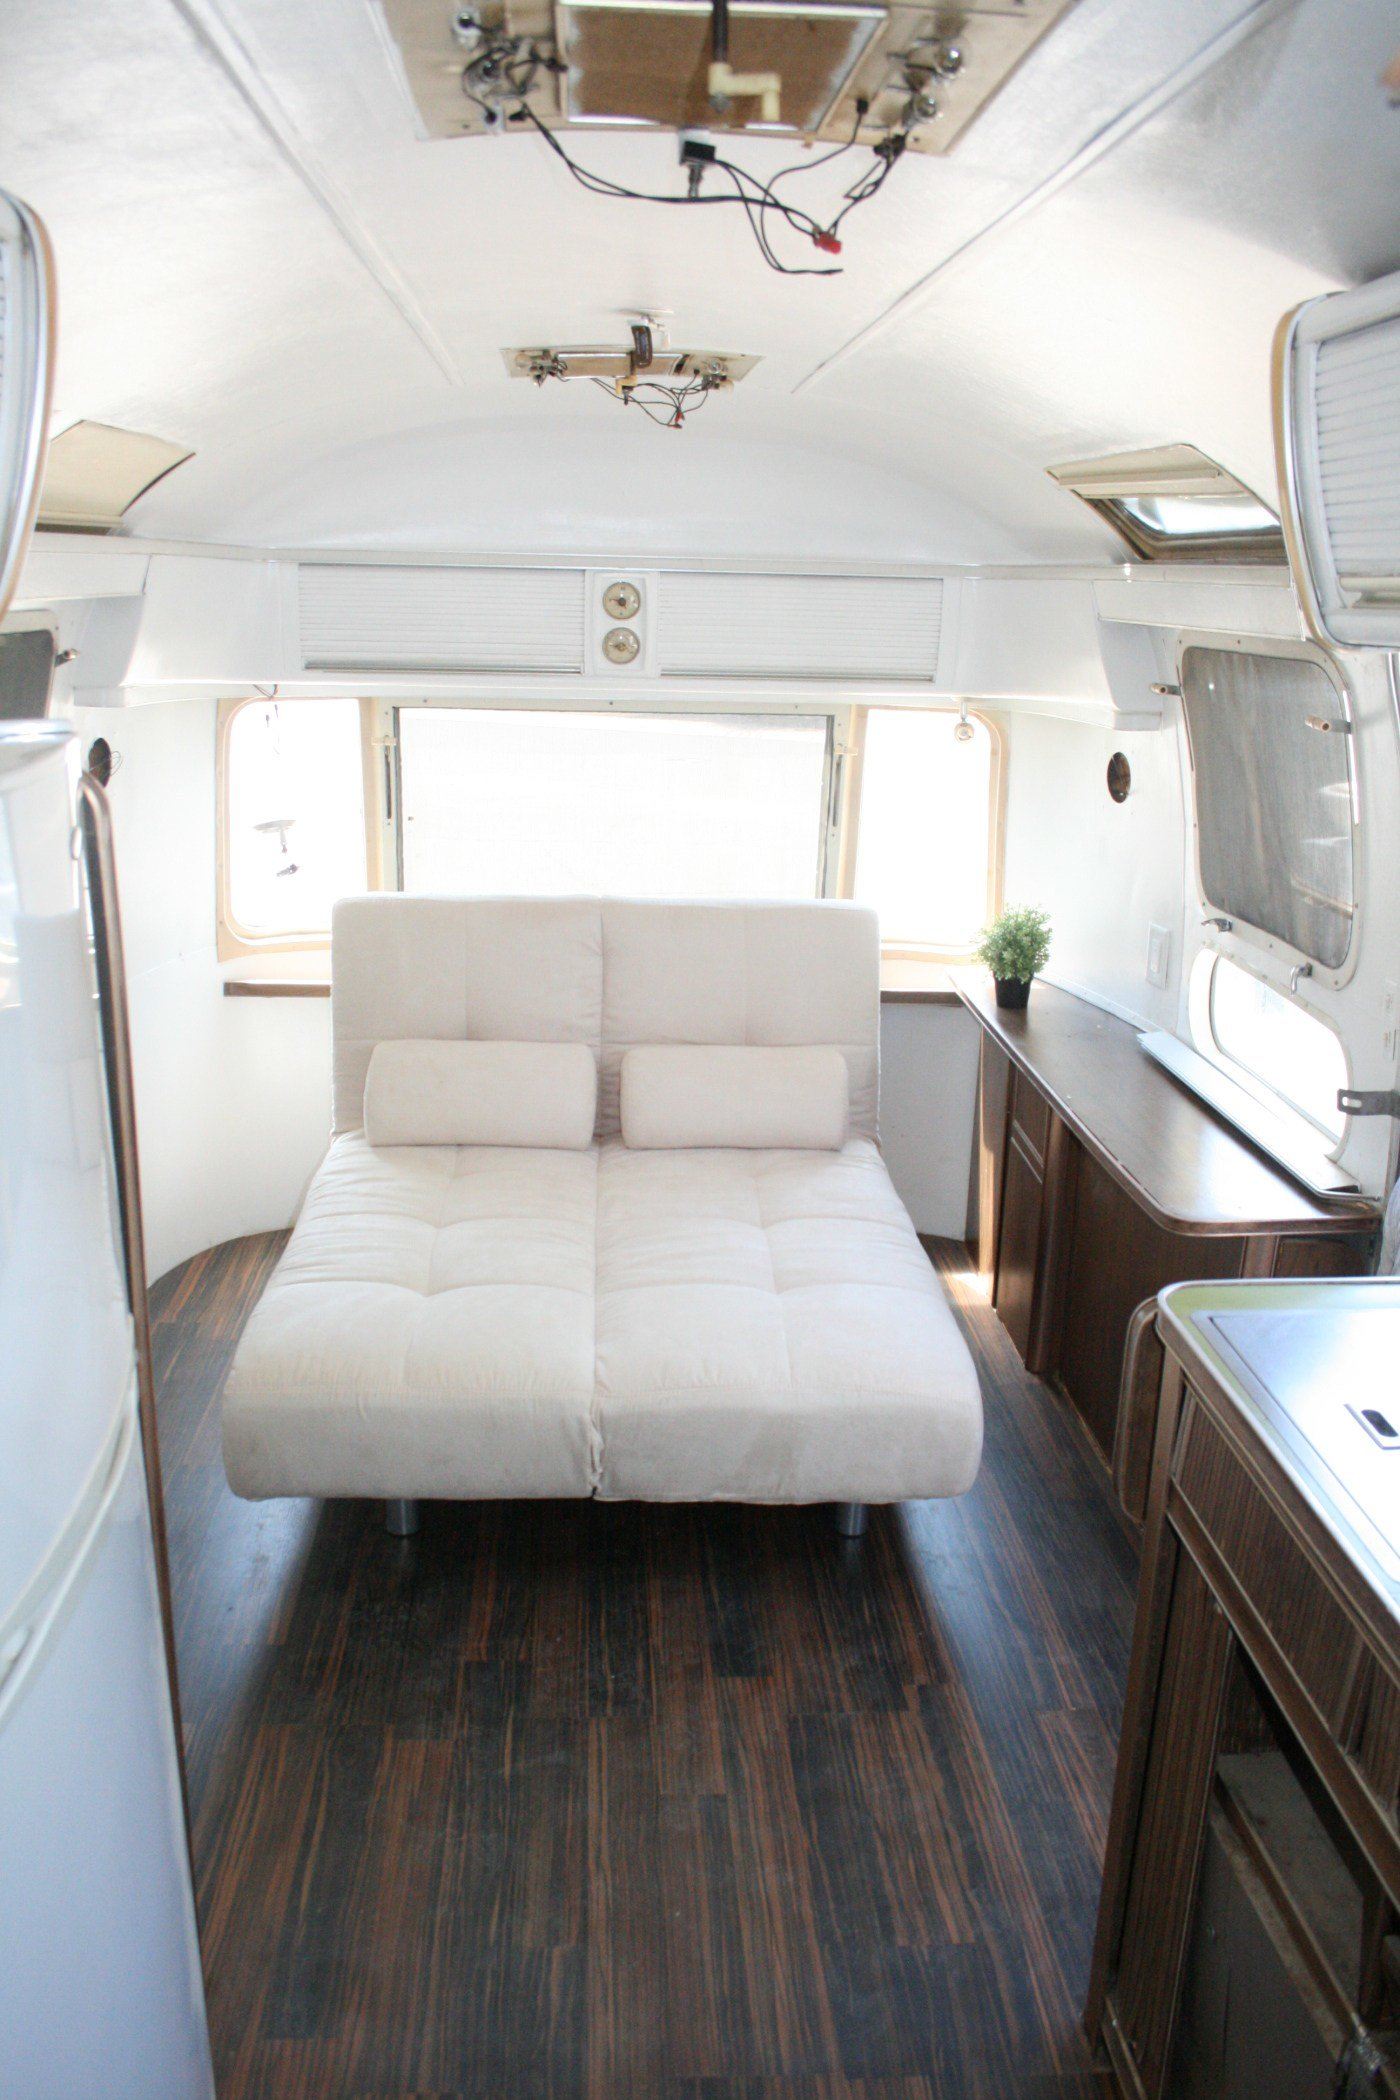 Best Rv Remodel 27 Amazing Rv Remodel Ideas You Need To See Rvshare Com With Pictures